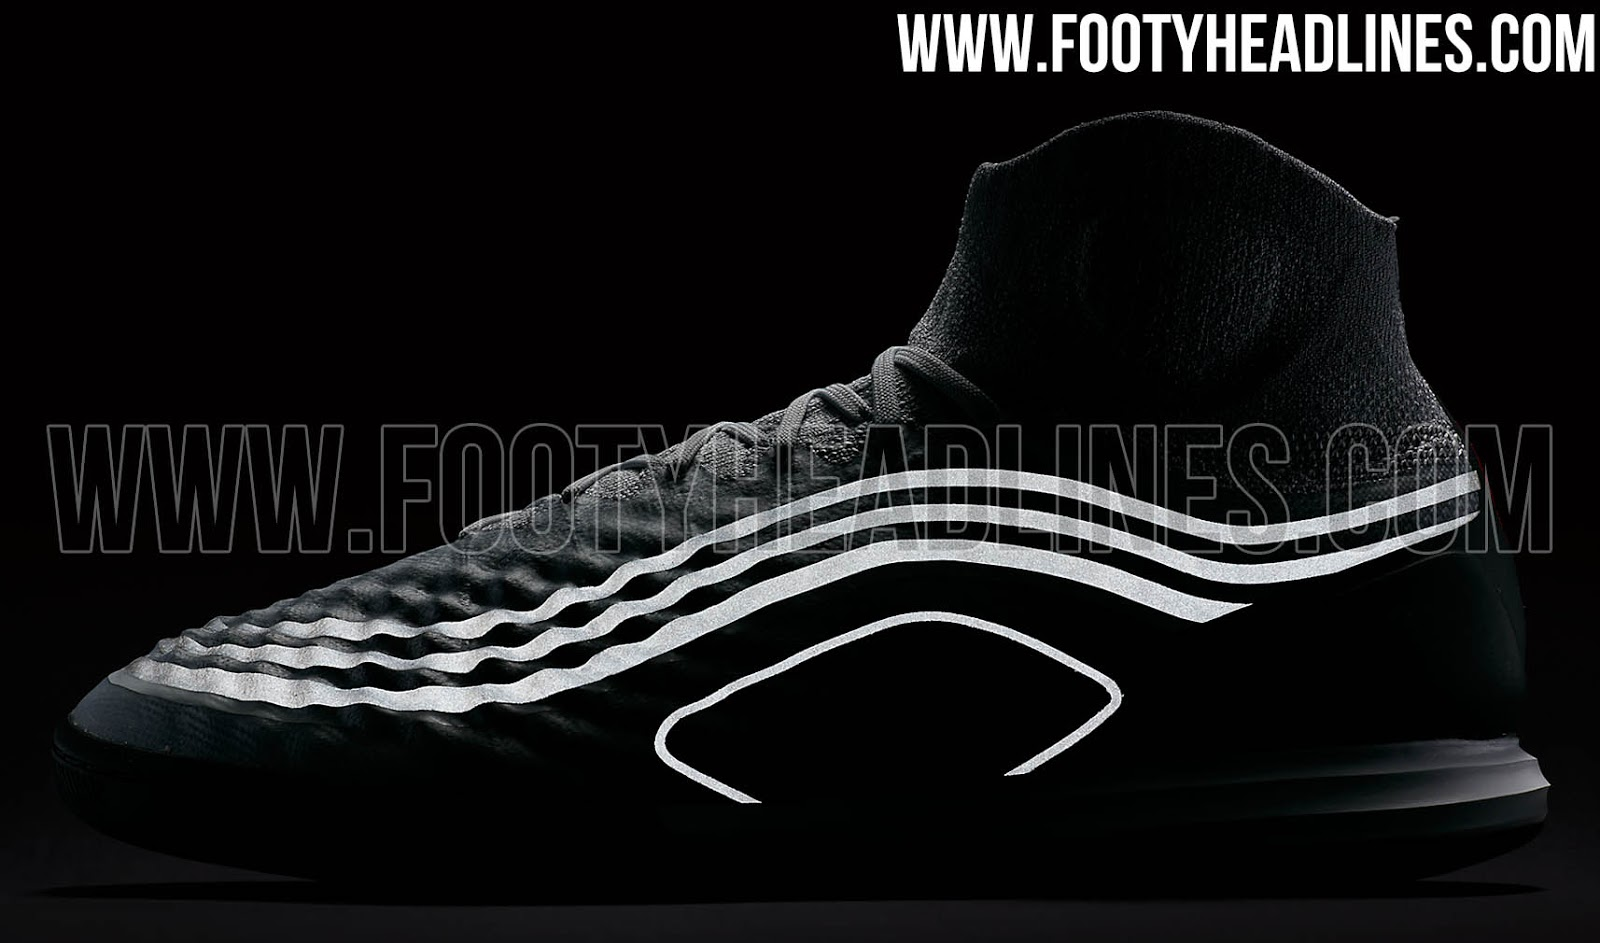 1baae0eccfb0 Combining the silhouette of the Nike MagistaX Proximo II with the design of  the iconic original Nike Air Max 97 shoes